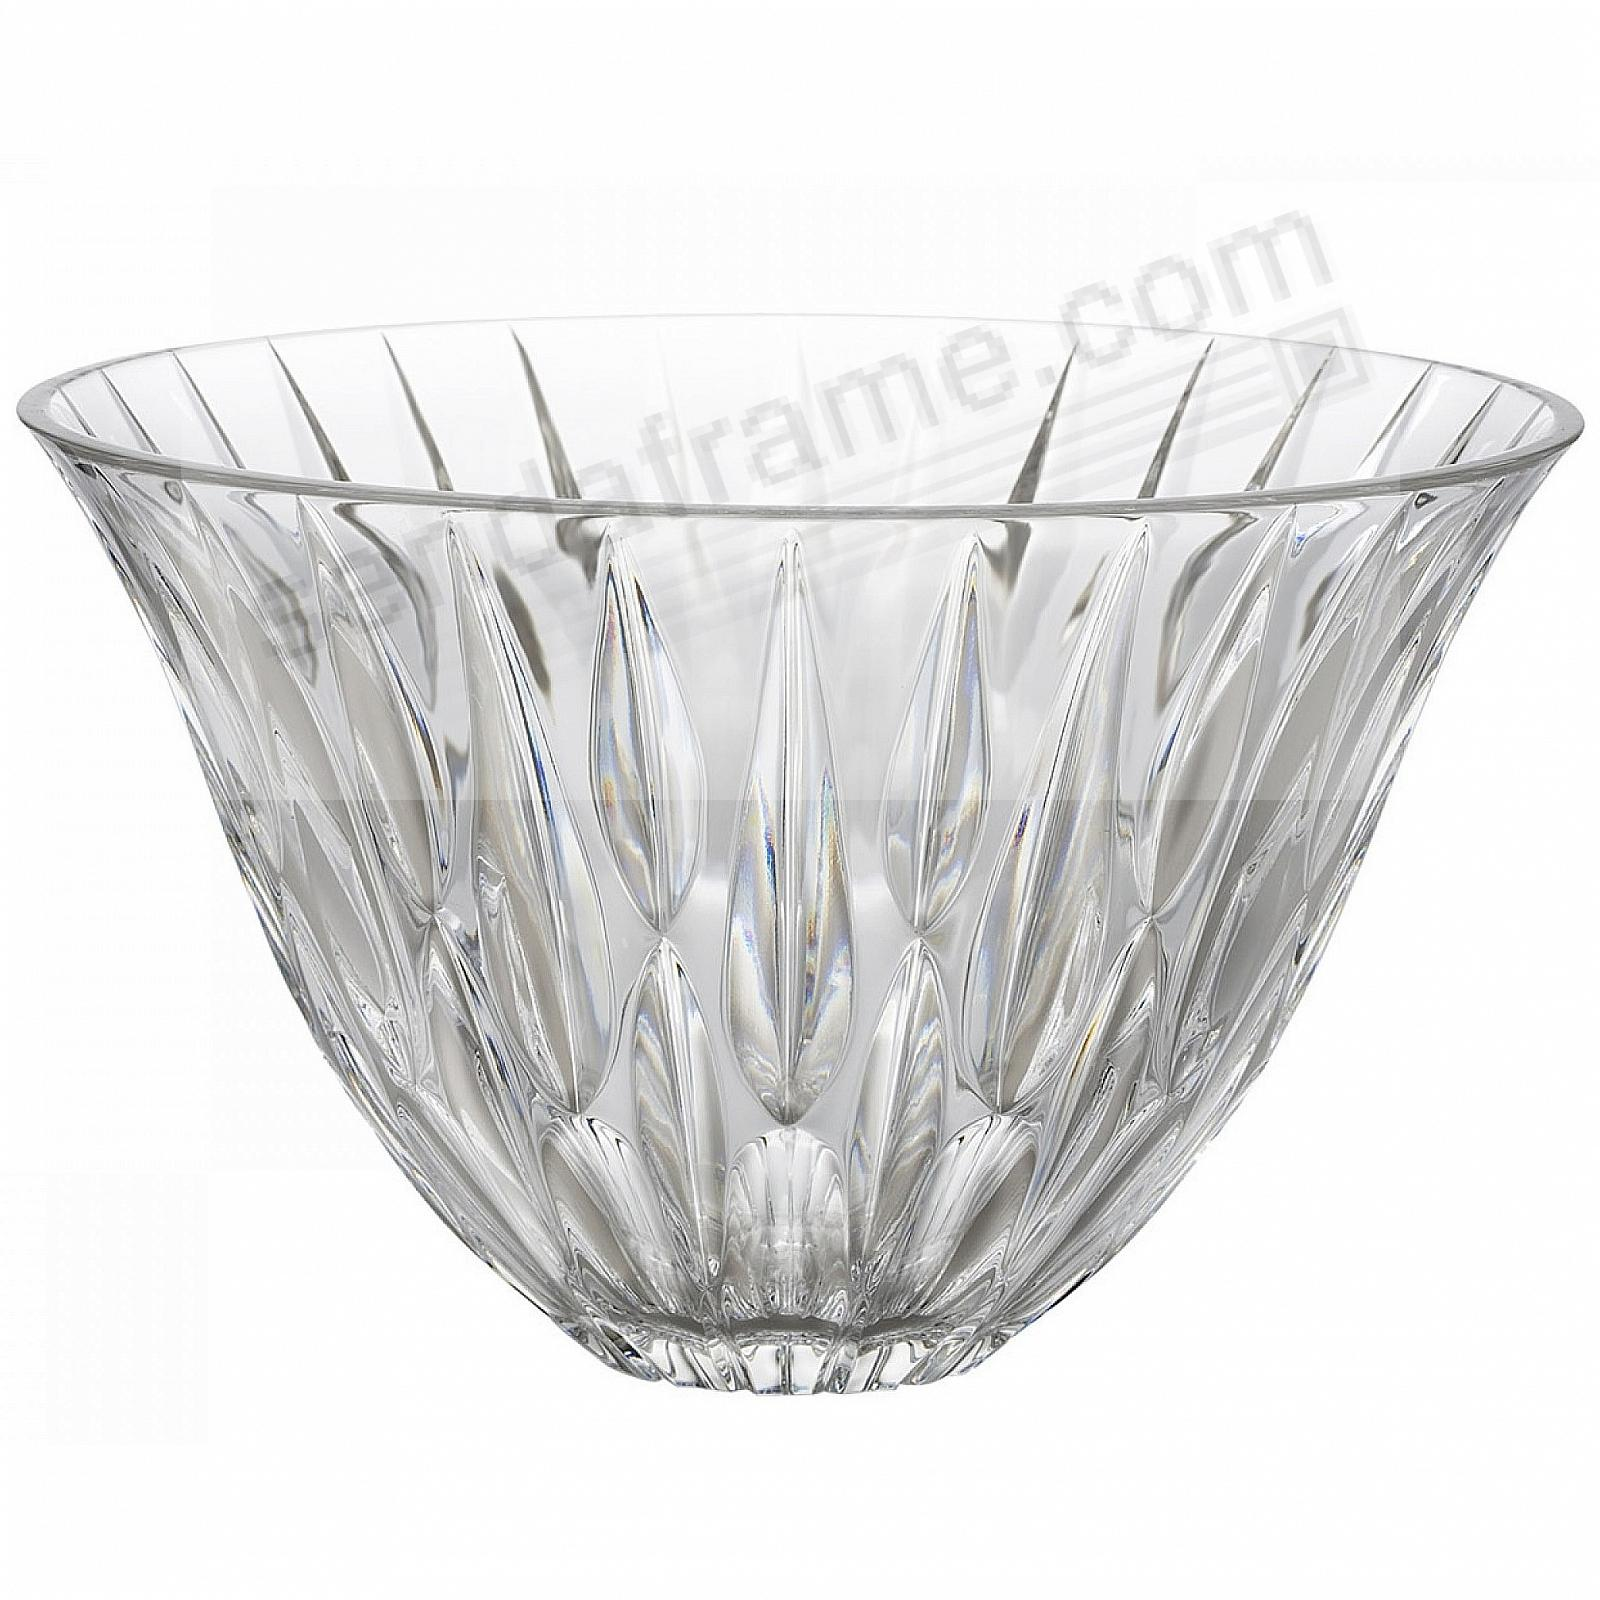 The Original RAINFALL 10inch Crystal Marquis by Waterford® Bowl